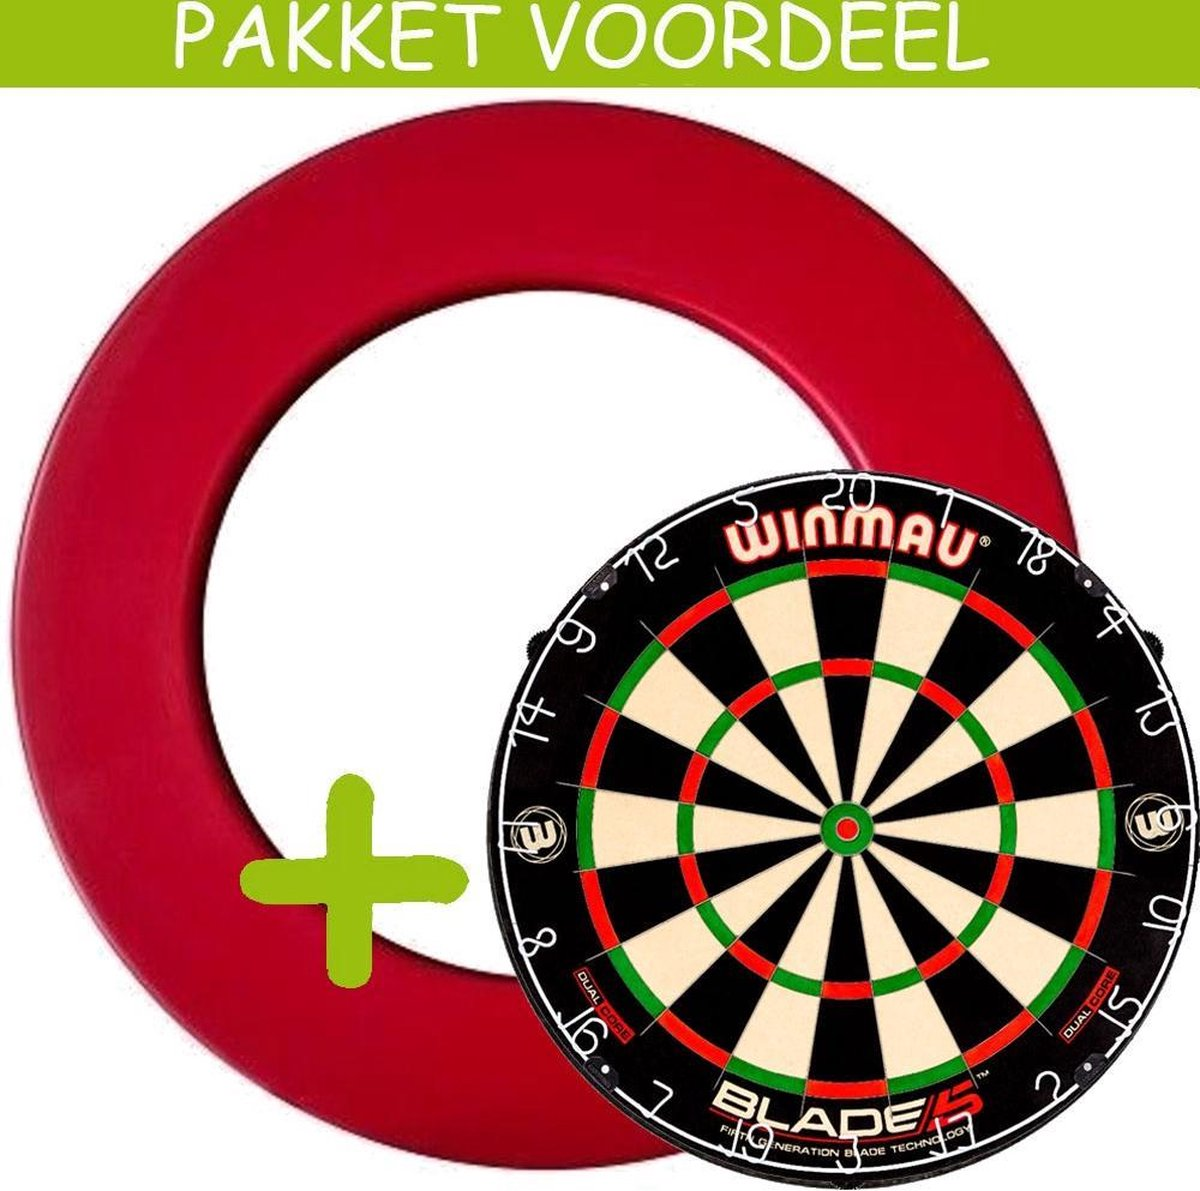 Dartbord Surround VoordeelPakket - Dual Core - Rubberen Surround-- (Rood)